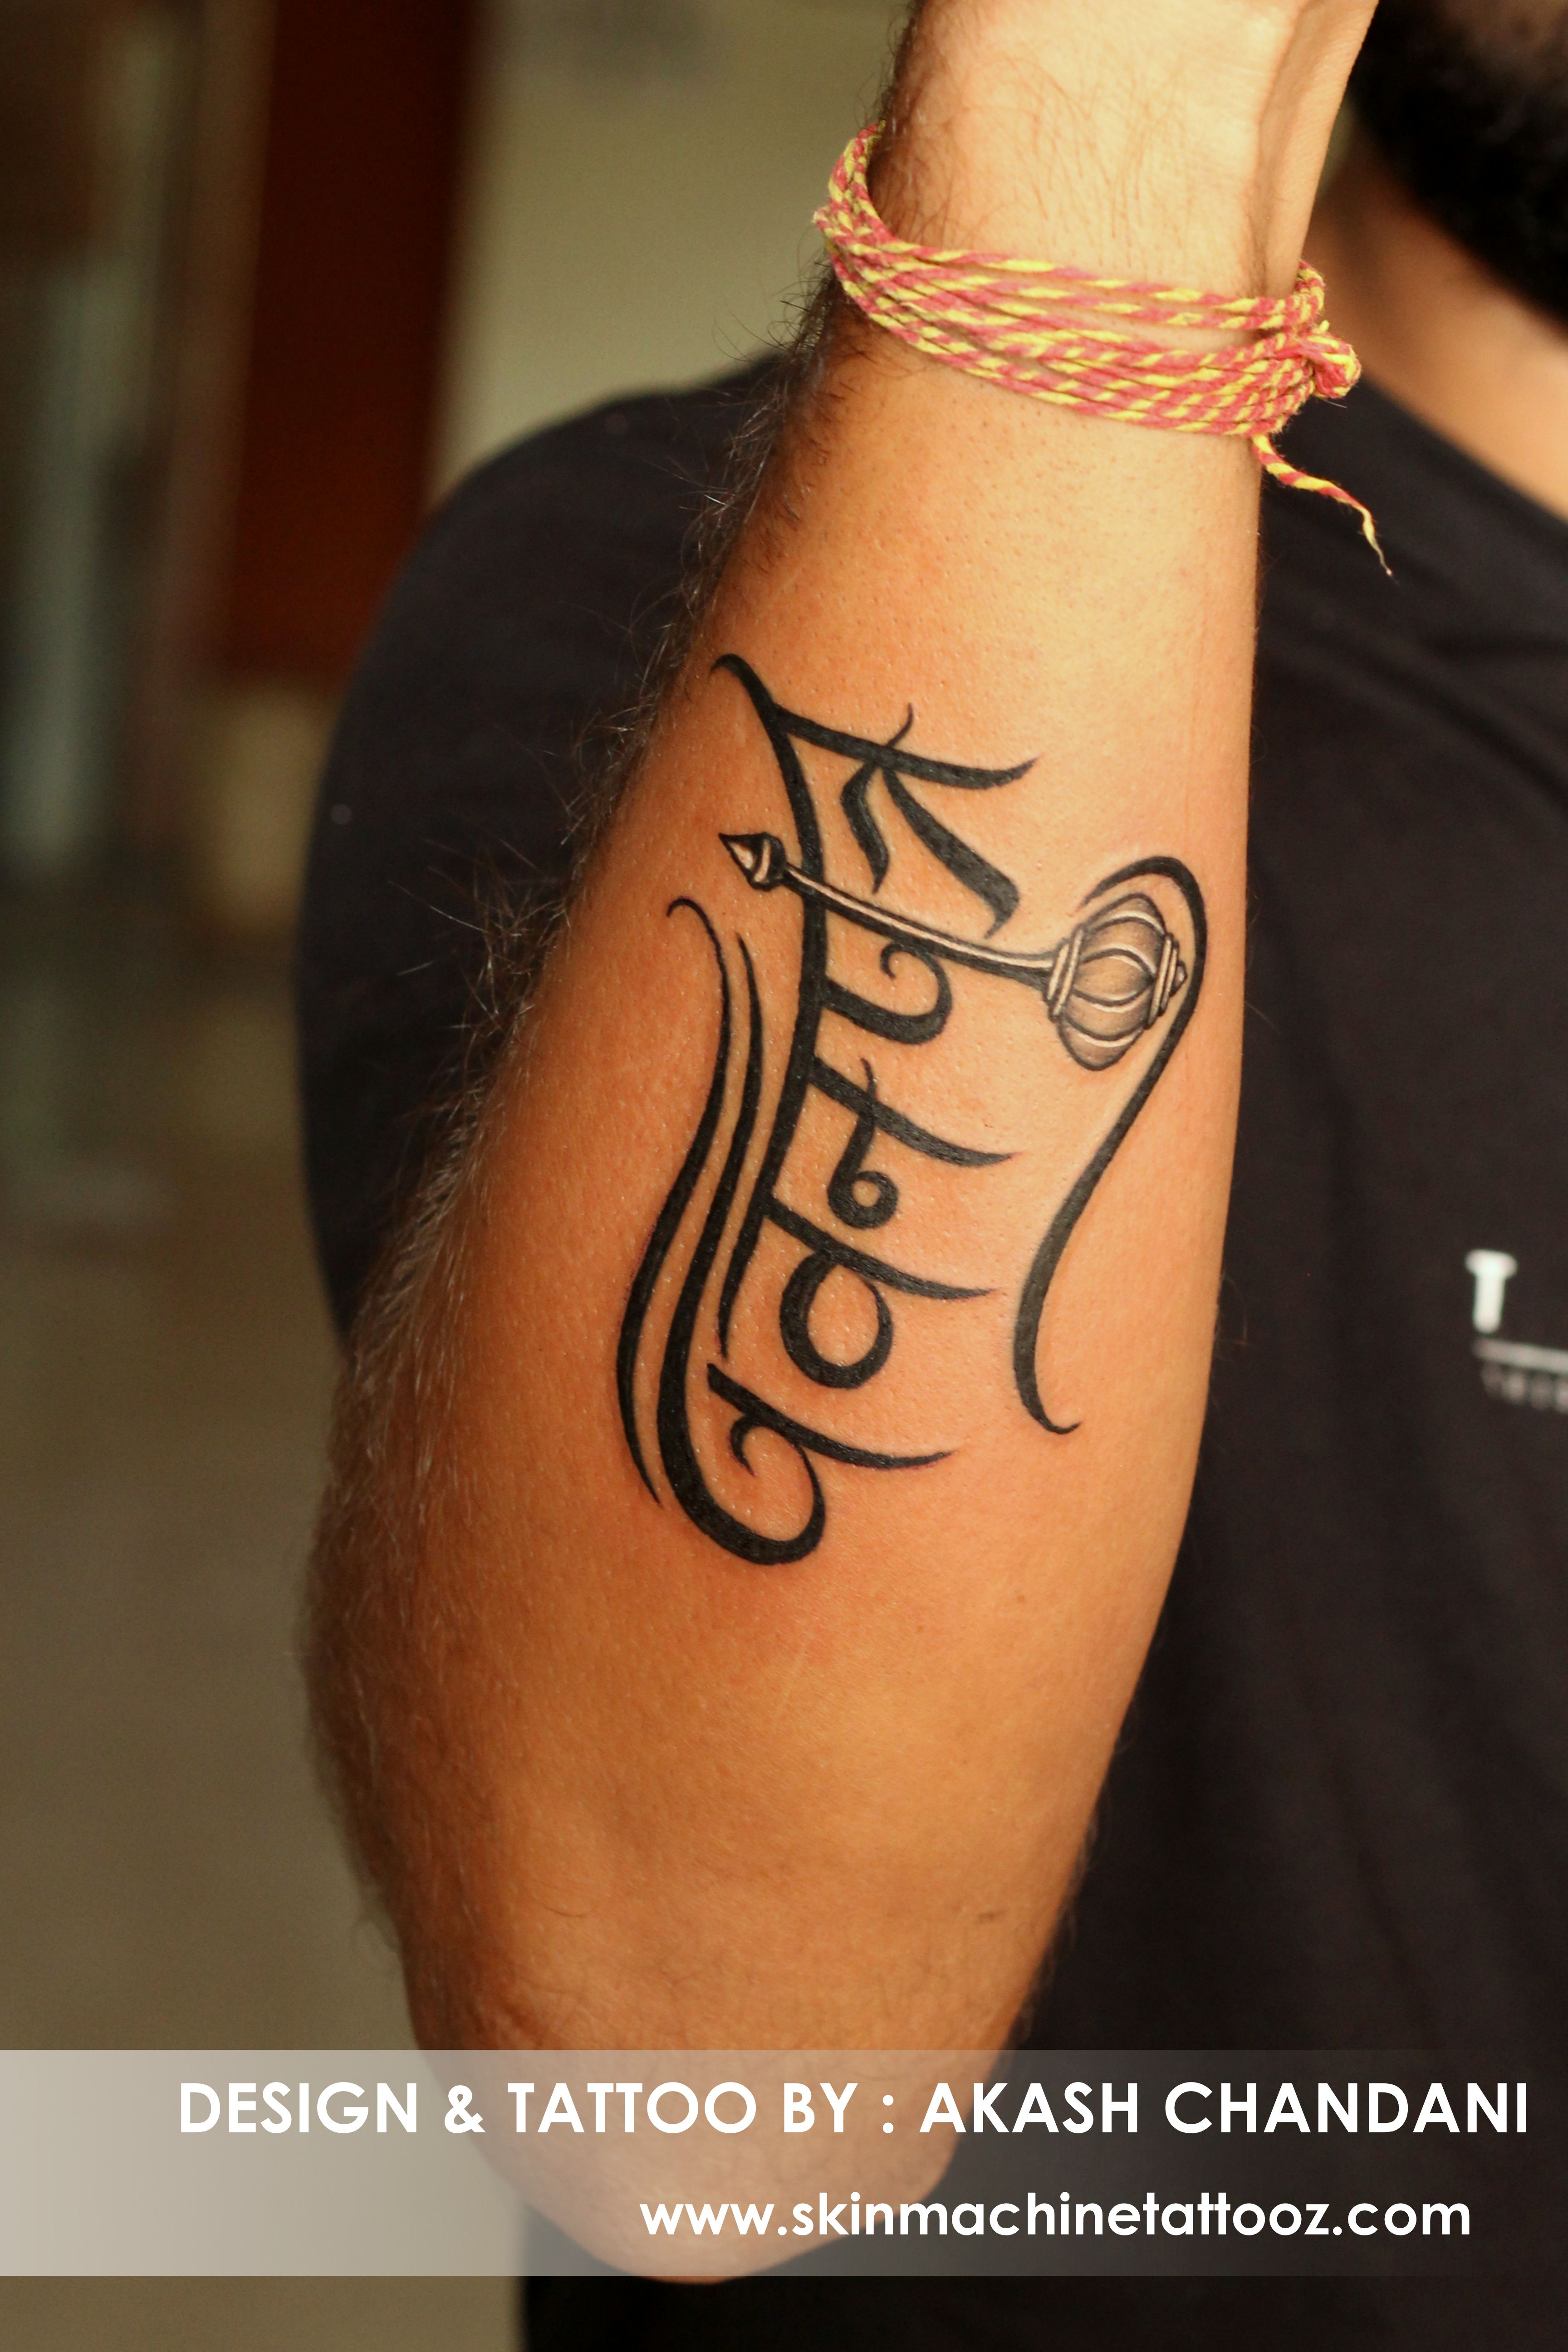 Pavanputra A name of Lord Hanuman Design and Tattoo by